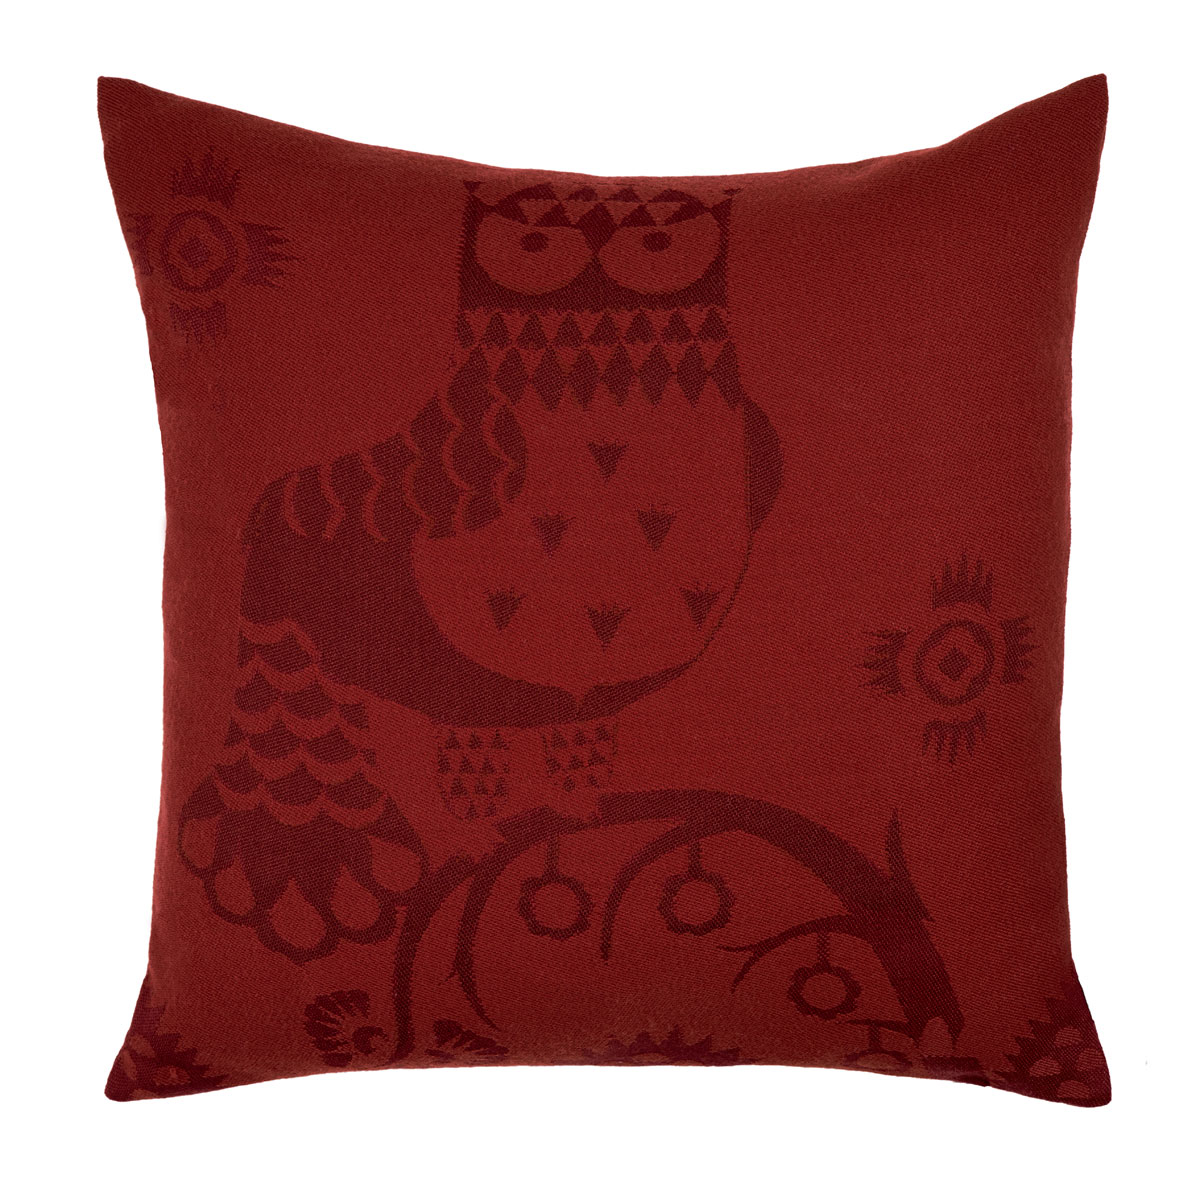 iittala Taika Red Throw Pillow  Ready for Red